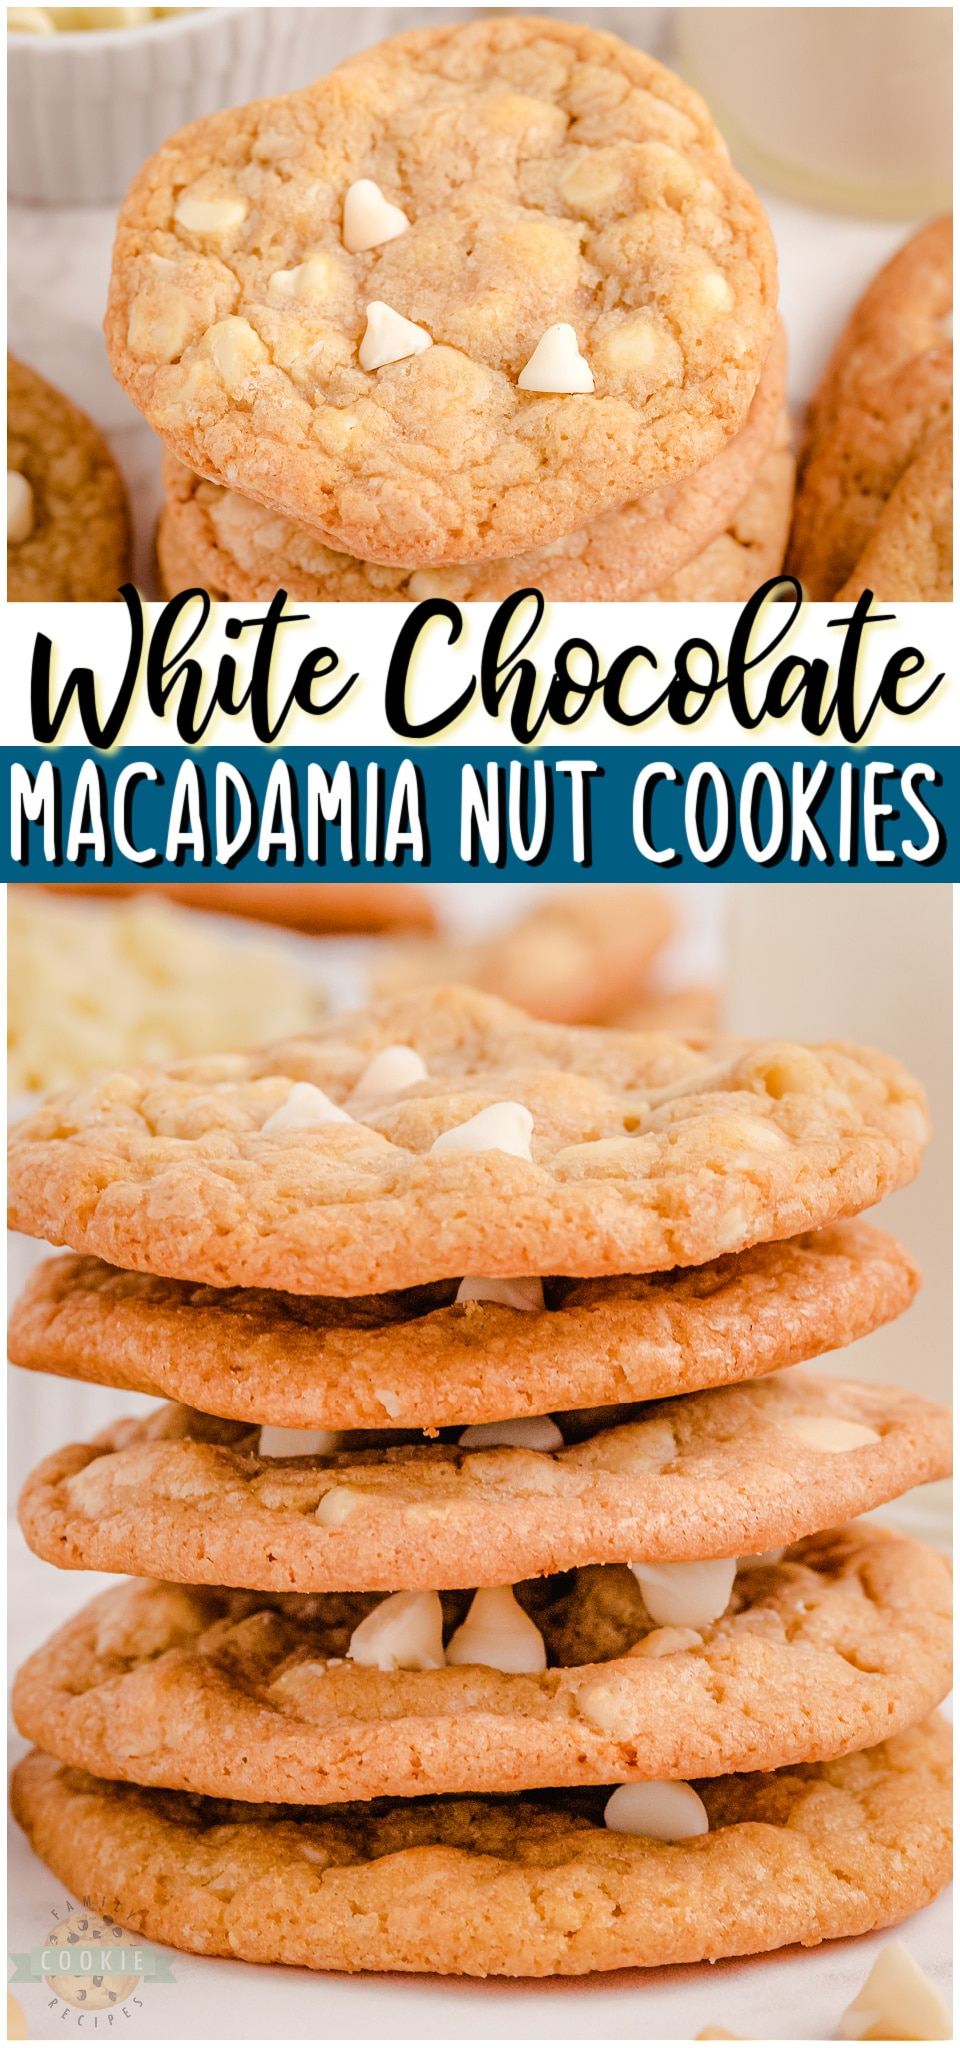 White chocolate chip cookies with macadamia nuts are a tasty treat that everyone can enjoy. With the soft and chewy cookies, buttery nuts and melt in your mouth chocolate chips, each bite is amazing! #cookies #baking #whitechocolate #macadamianut #dessert #easyrecipe from FAMILY COOKIE RECIPES via @familycookierecipes